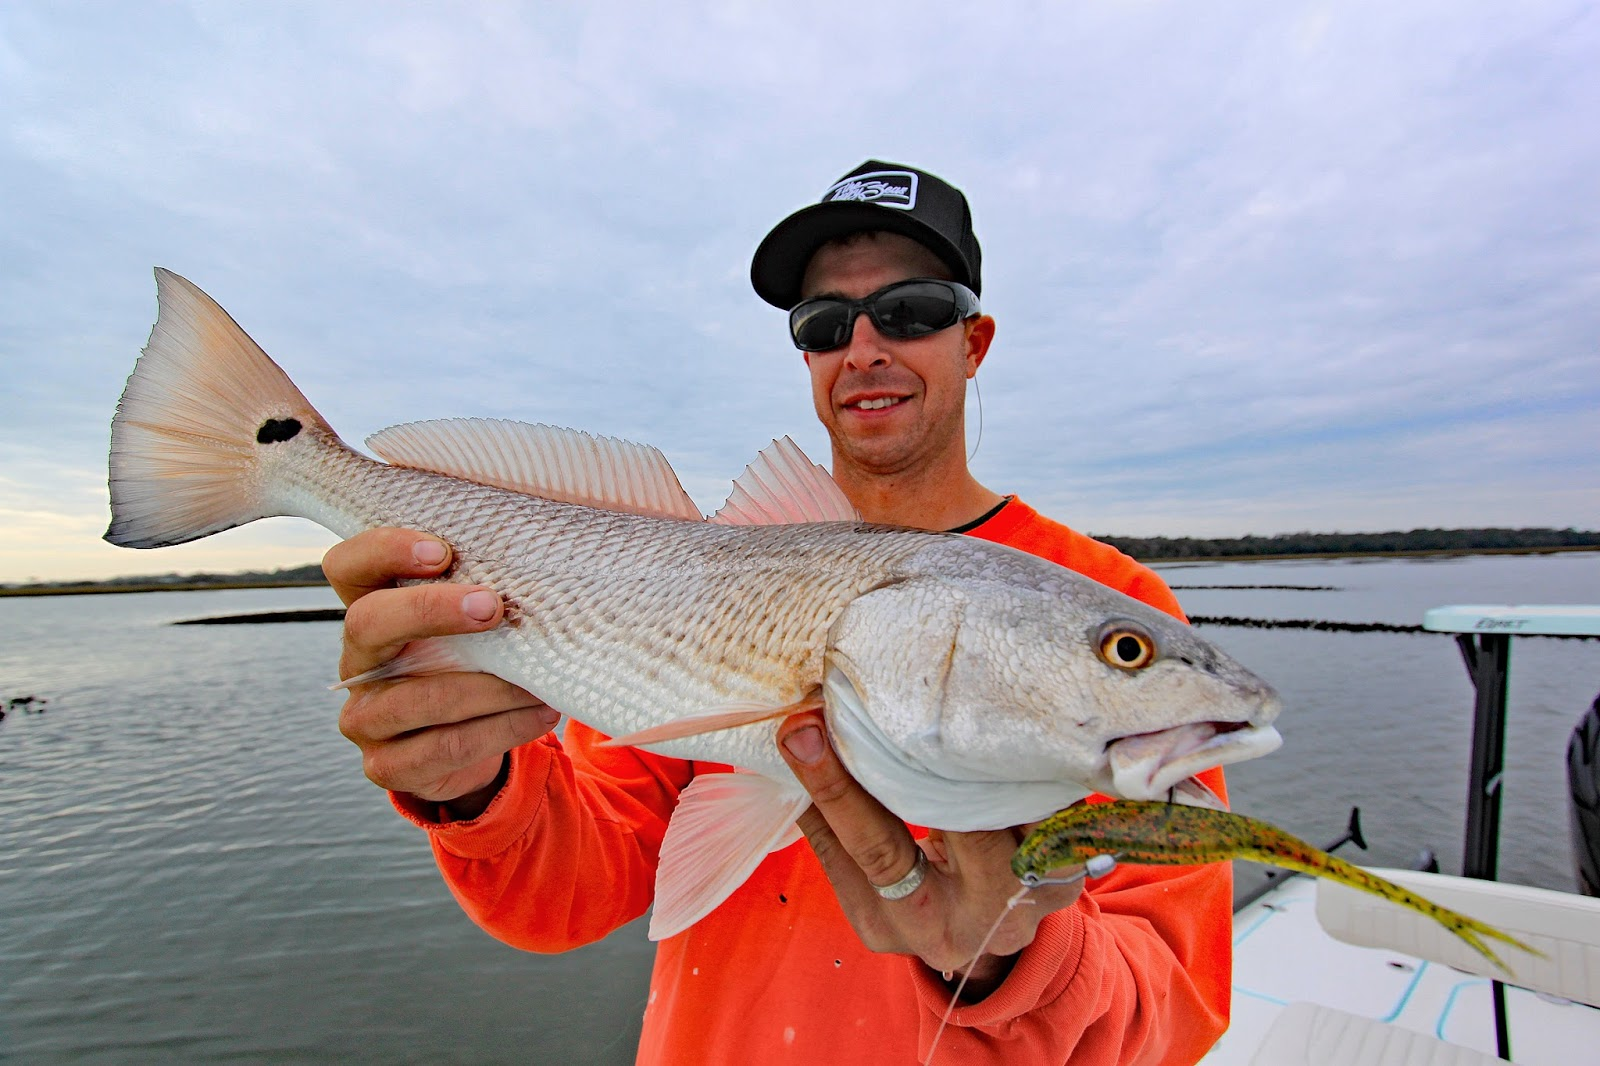 St augustine palm coast fishing report december 22nd for St augustine fishing spots